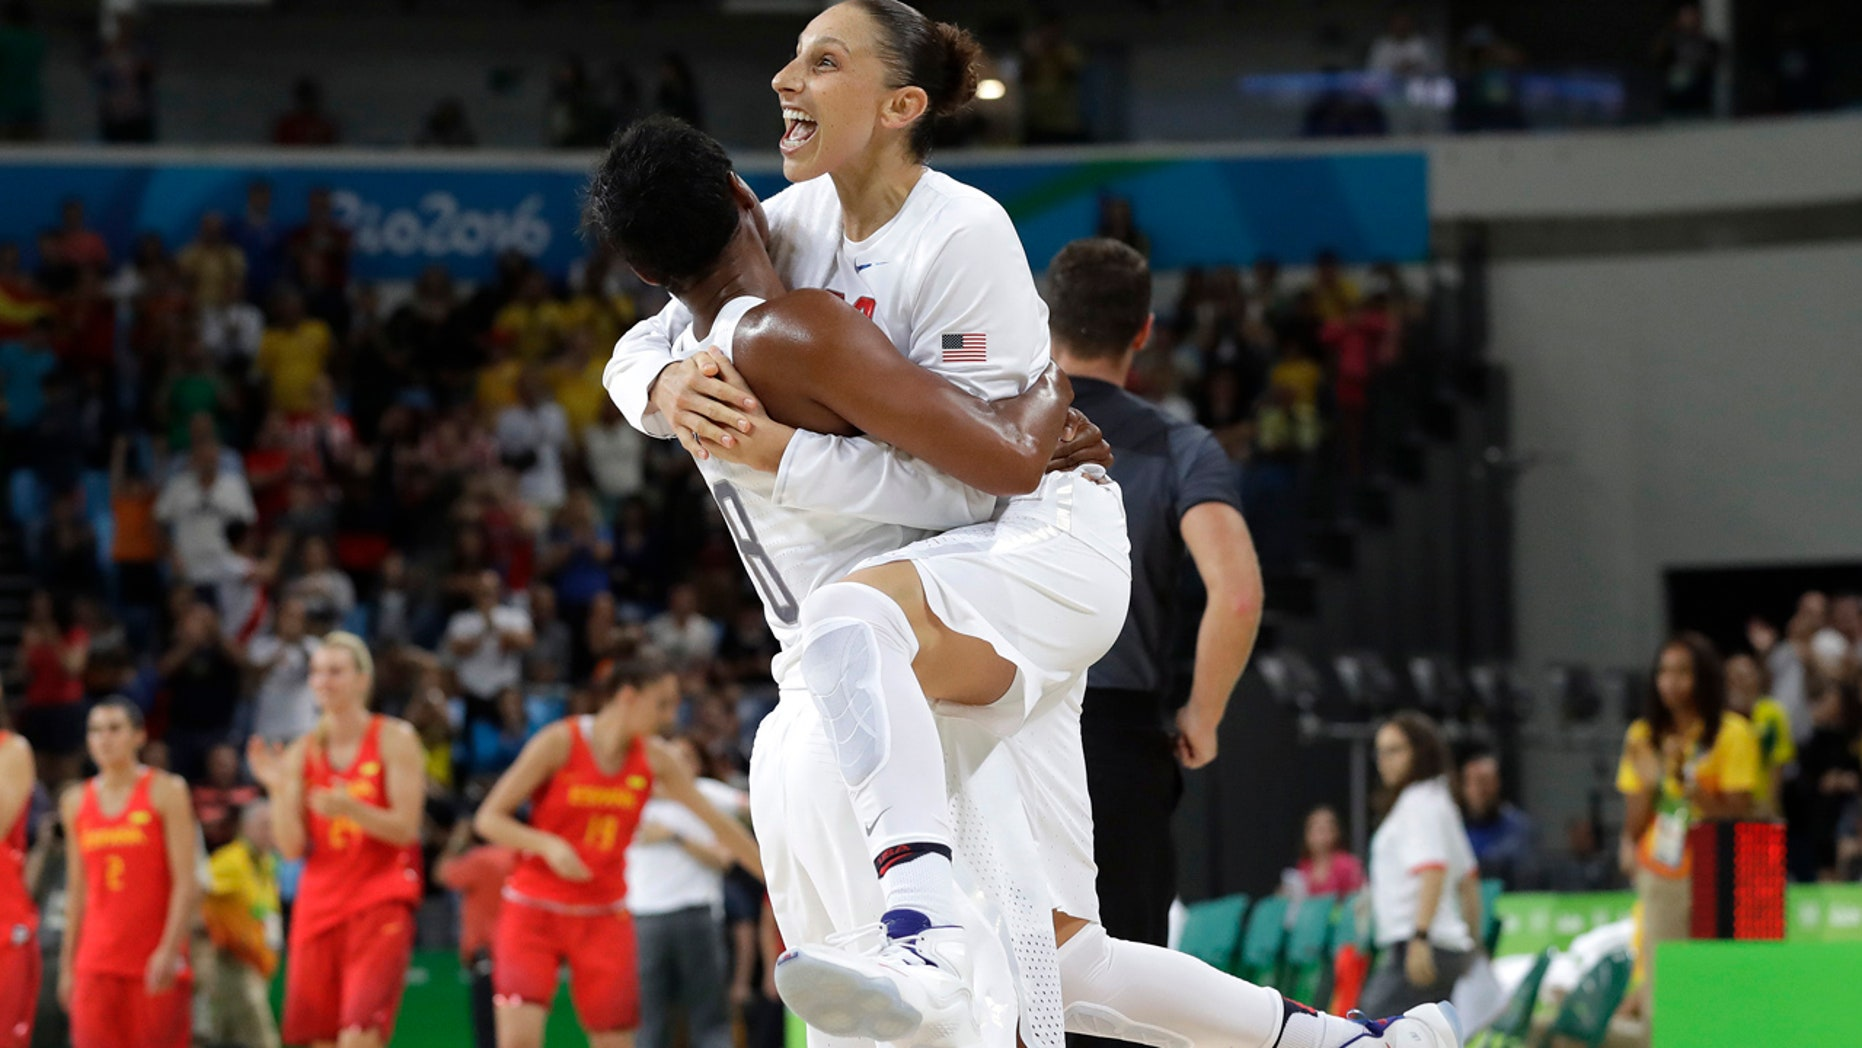 Aug. 20, 2016: United States' Diana Taurasi, right, leaps into the arms of teammate Angel McCoughtry as they celebrate their win over Spain in the women's gold medal basketball game at the 2016 Summer Olympics in Rio de Janeiro, Brazil.